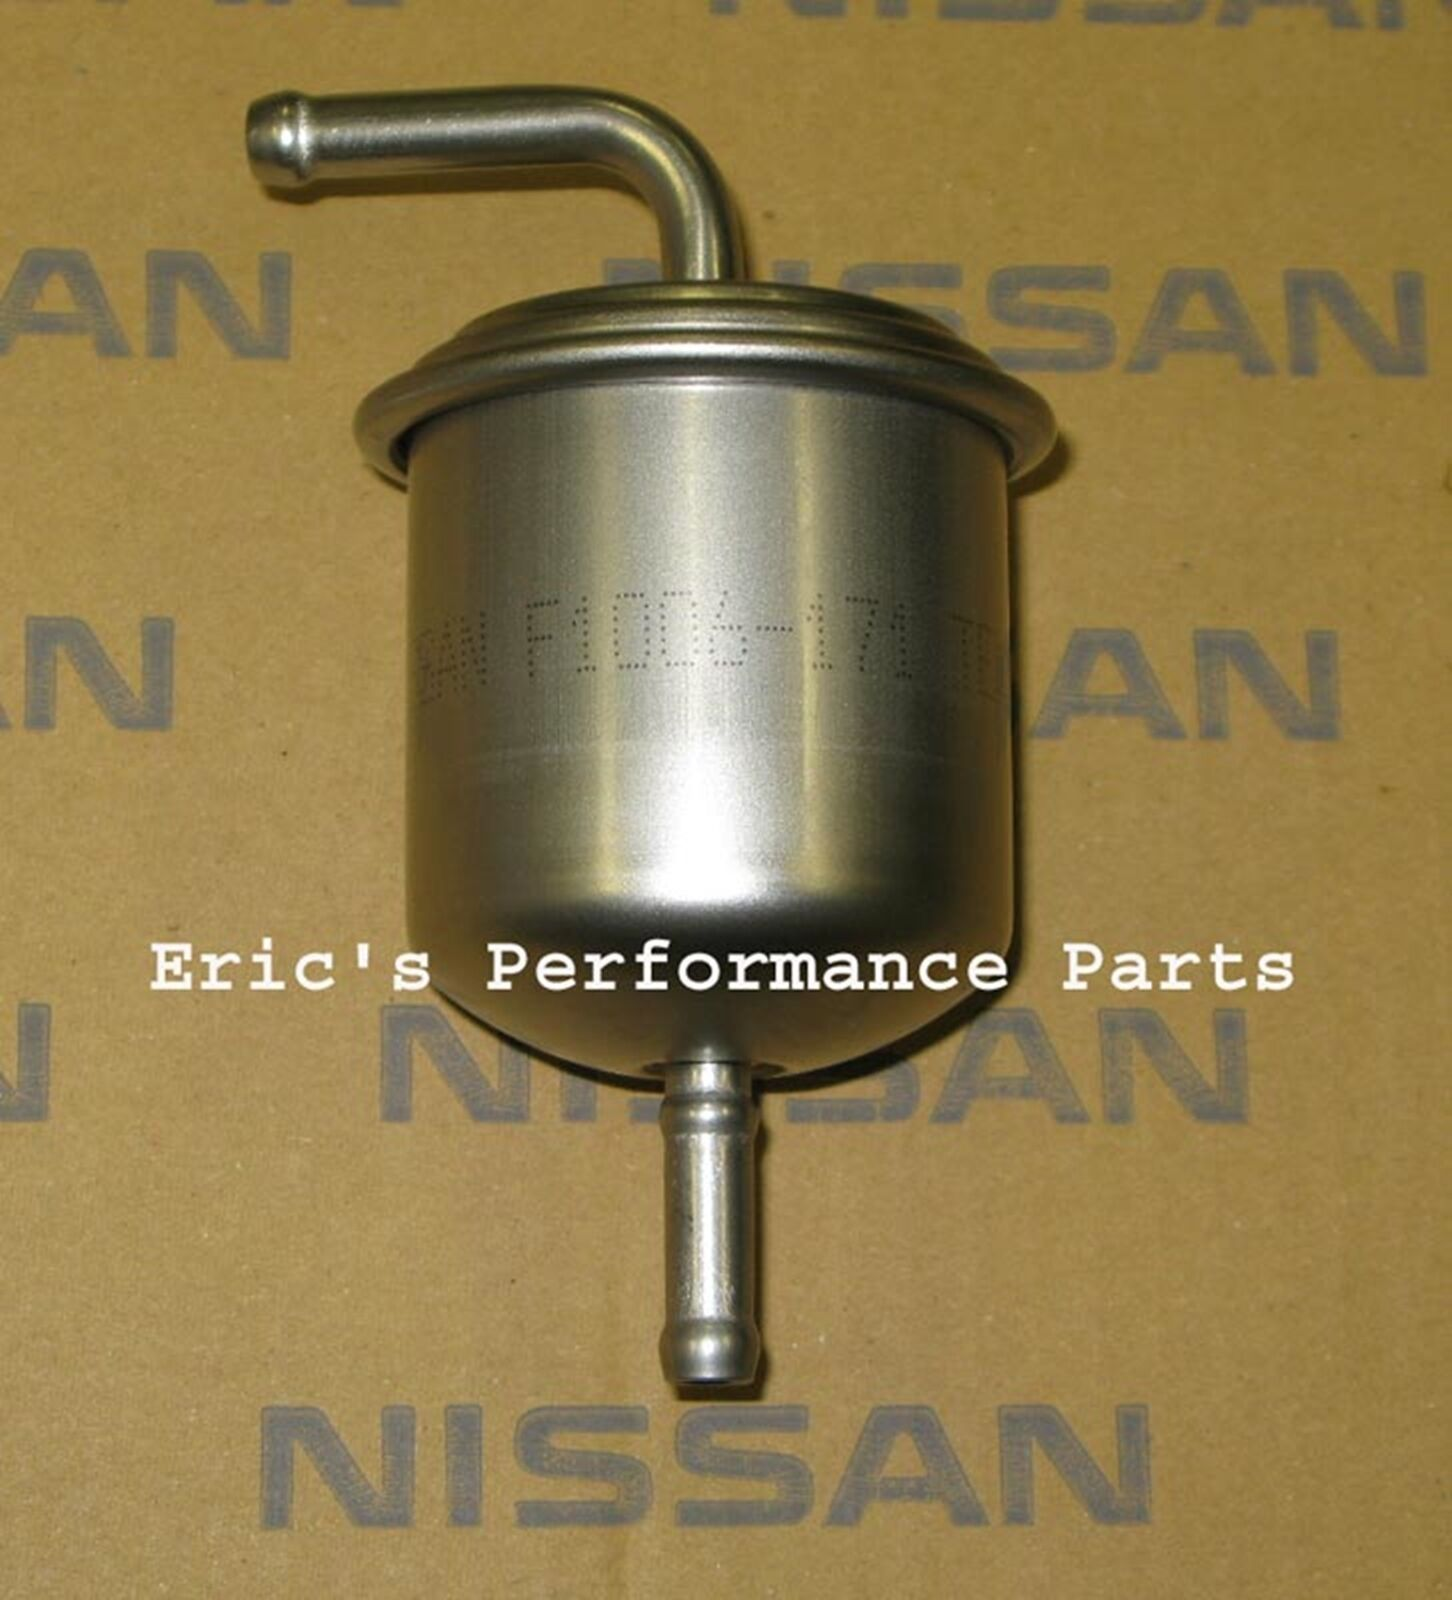 Nissan Oem Fuel Filter Rb20det R32 Skyline Rb20de Rb20 Rb Gts T 2011 Maxima 1 Of 3only Available